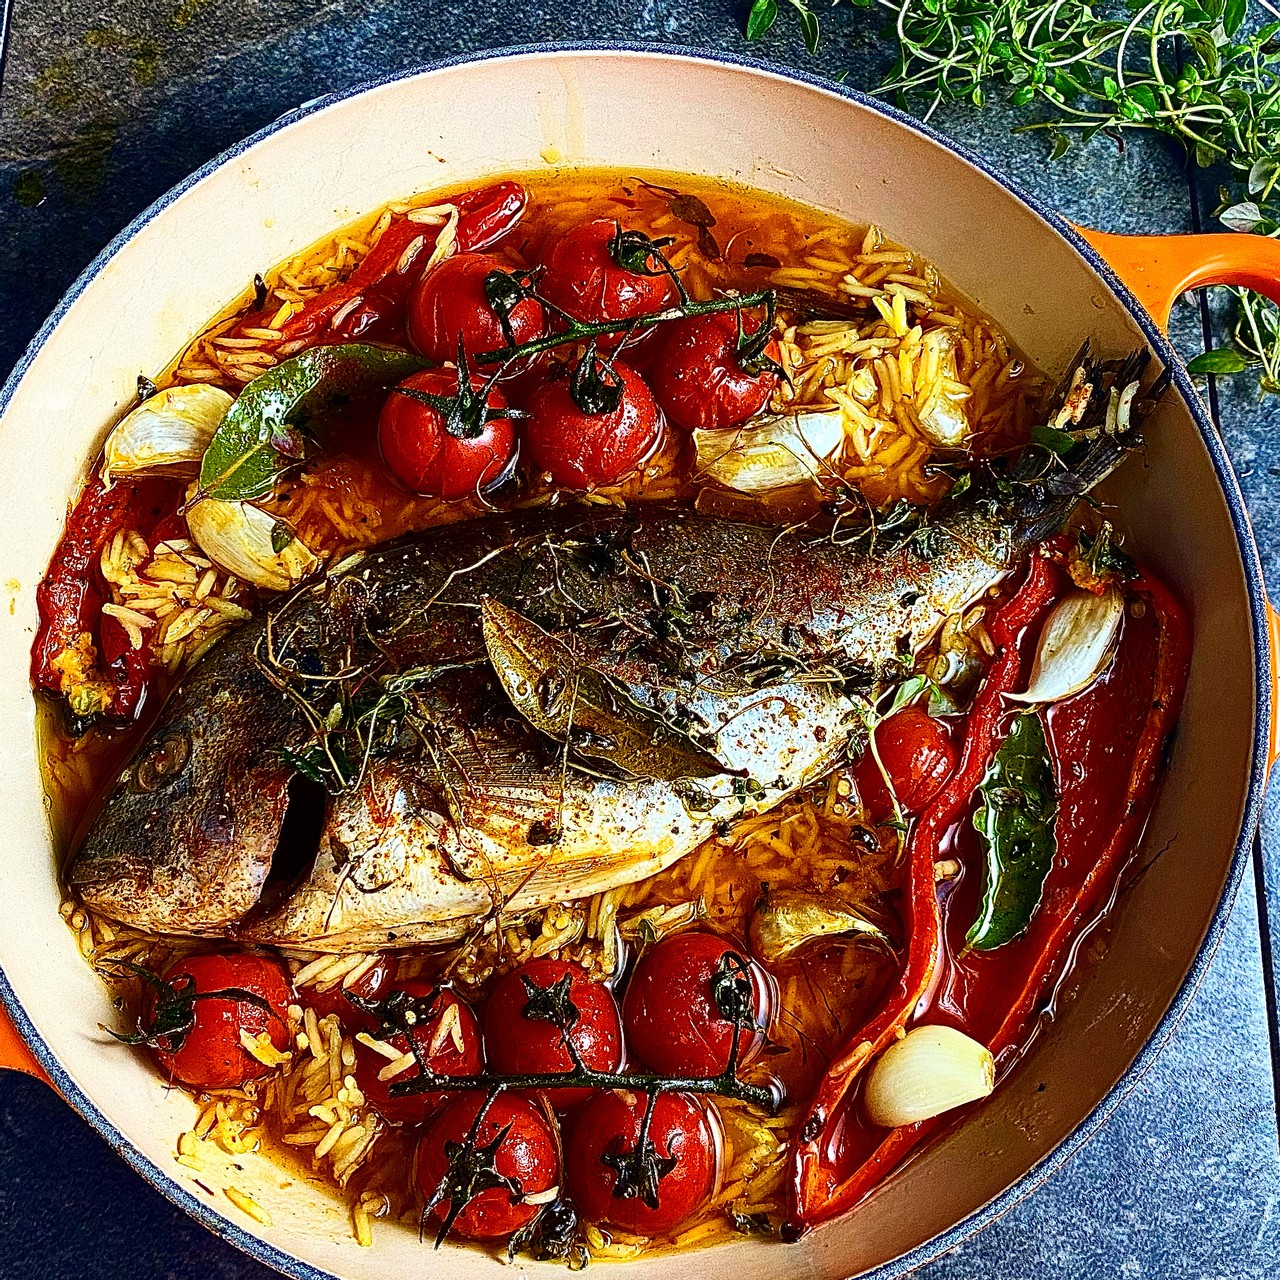 Baked Bream with Garlic and Saffron Rice